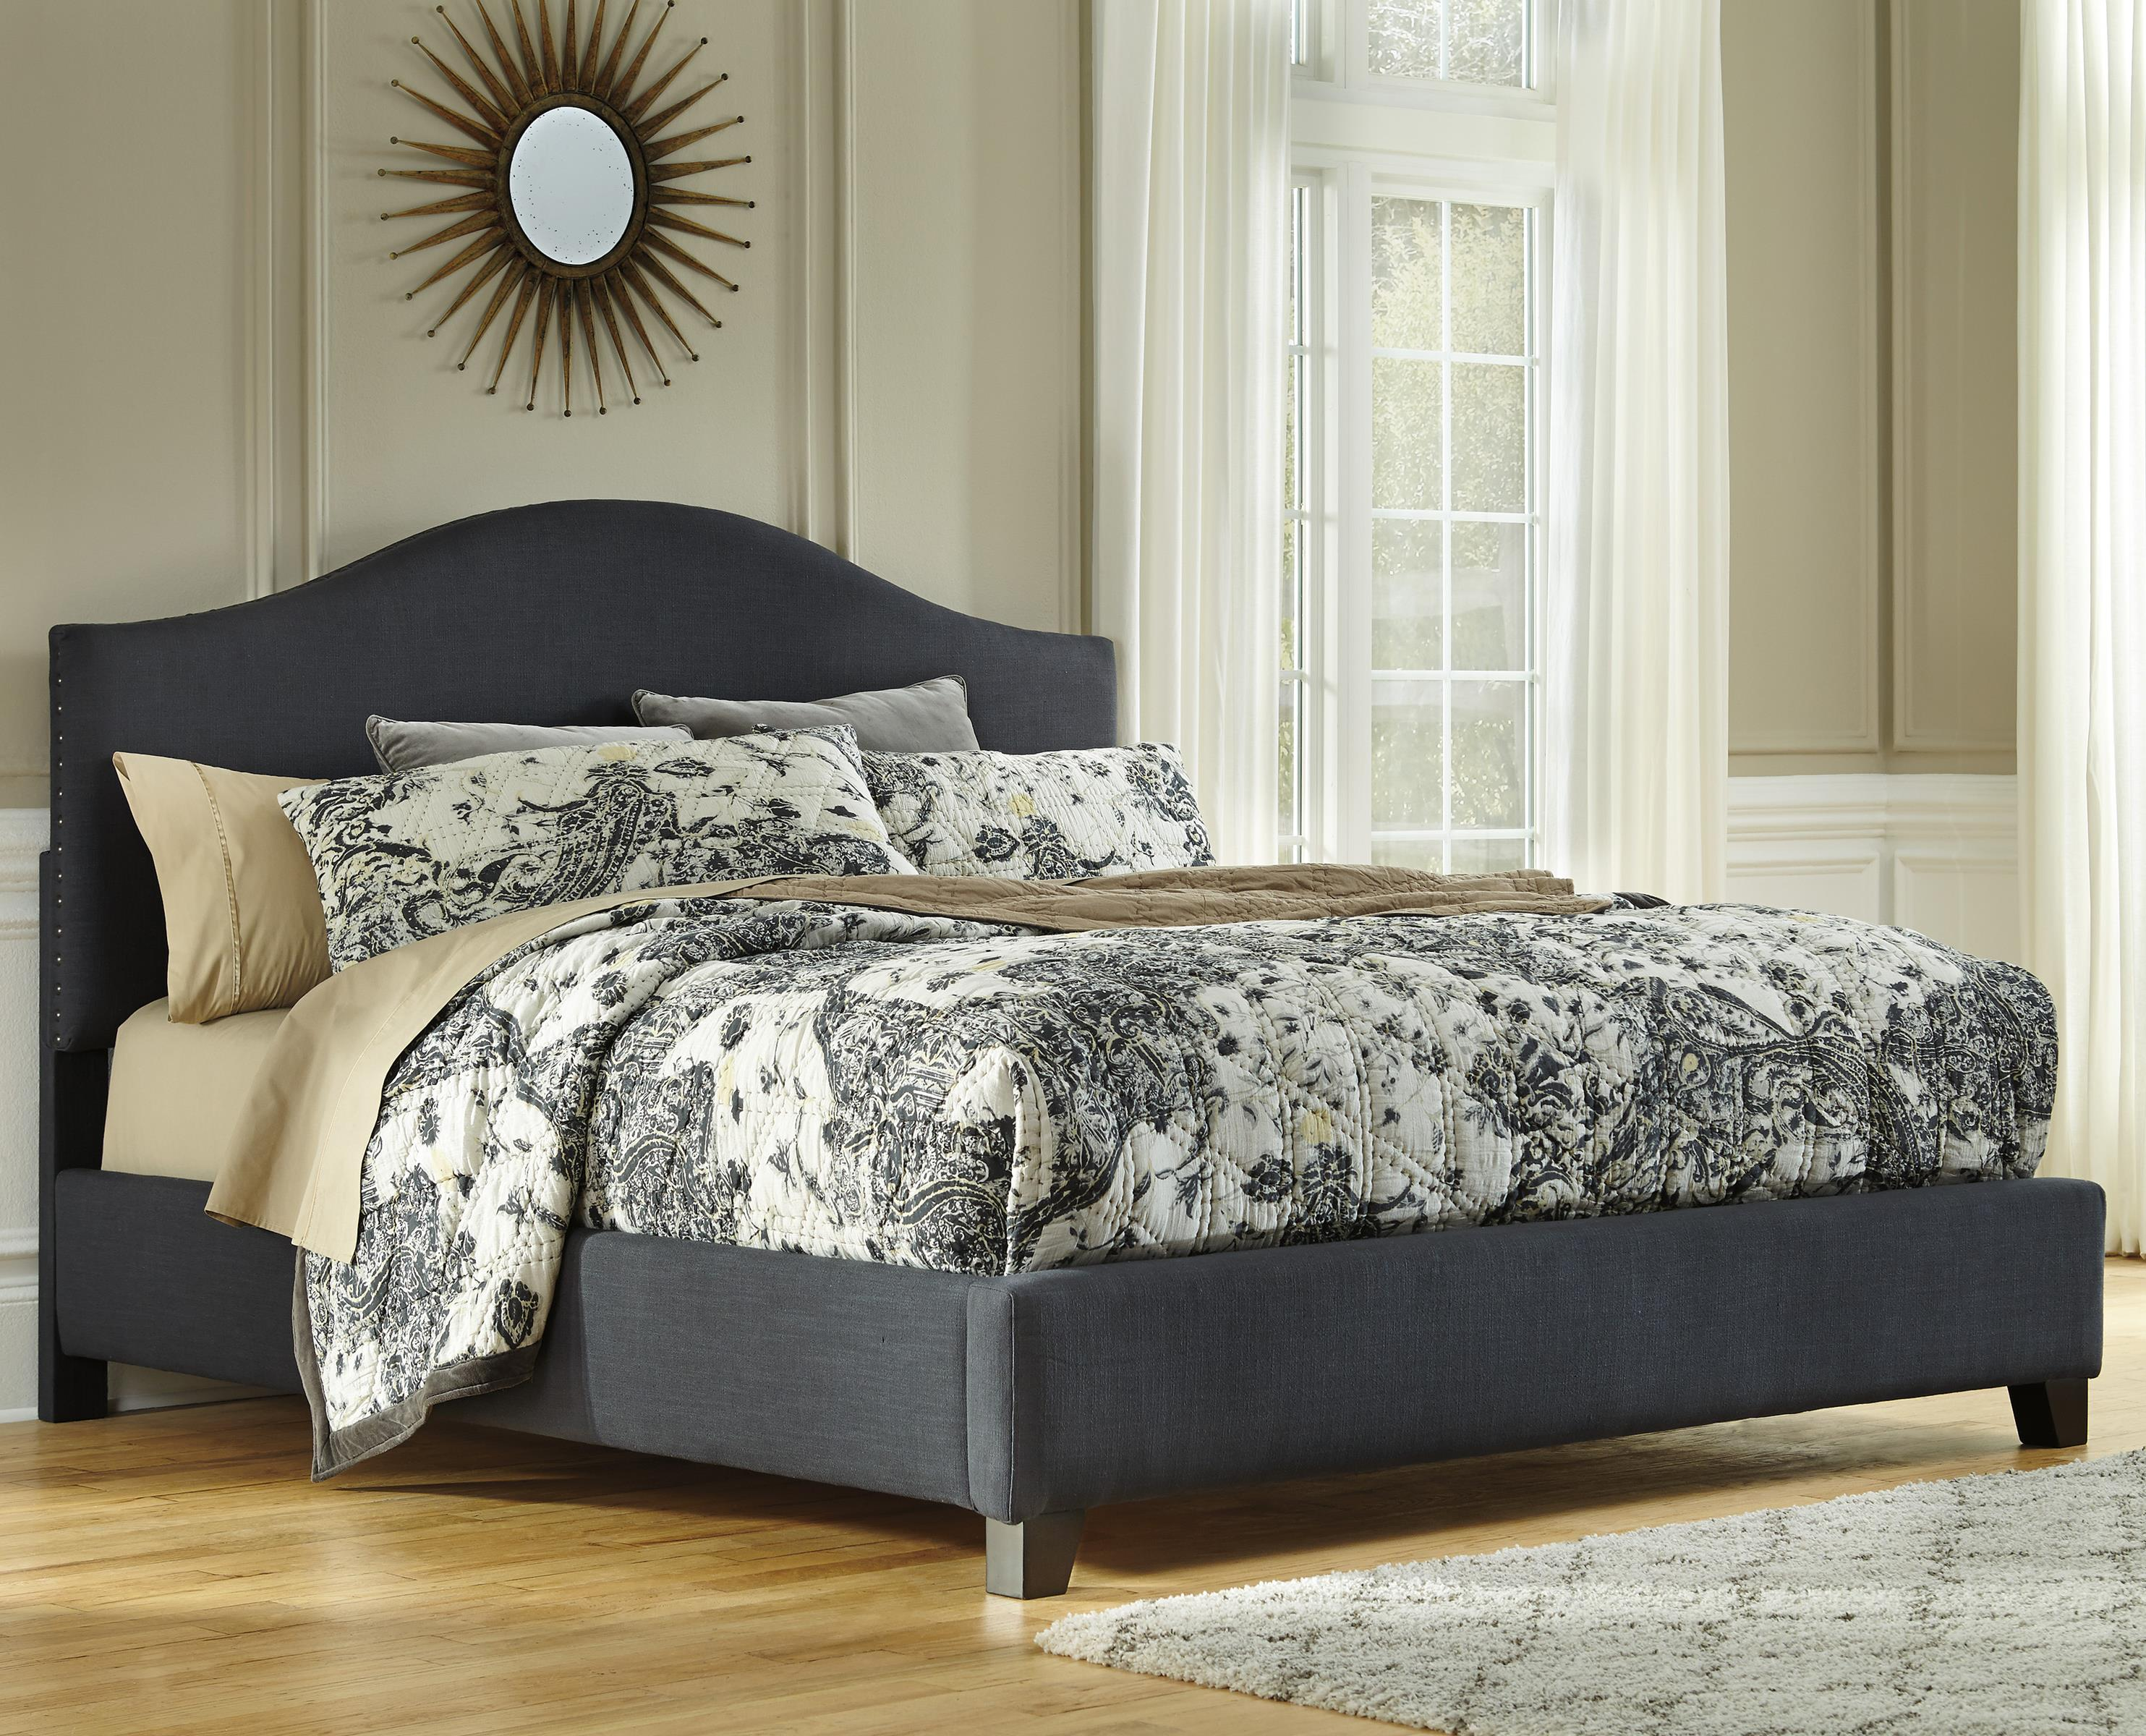 Signature Design by Ashley Kasidon Queen Upholstered Bed - Item Number: B600-457+454+496